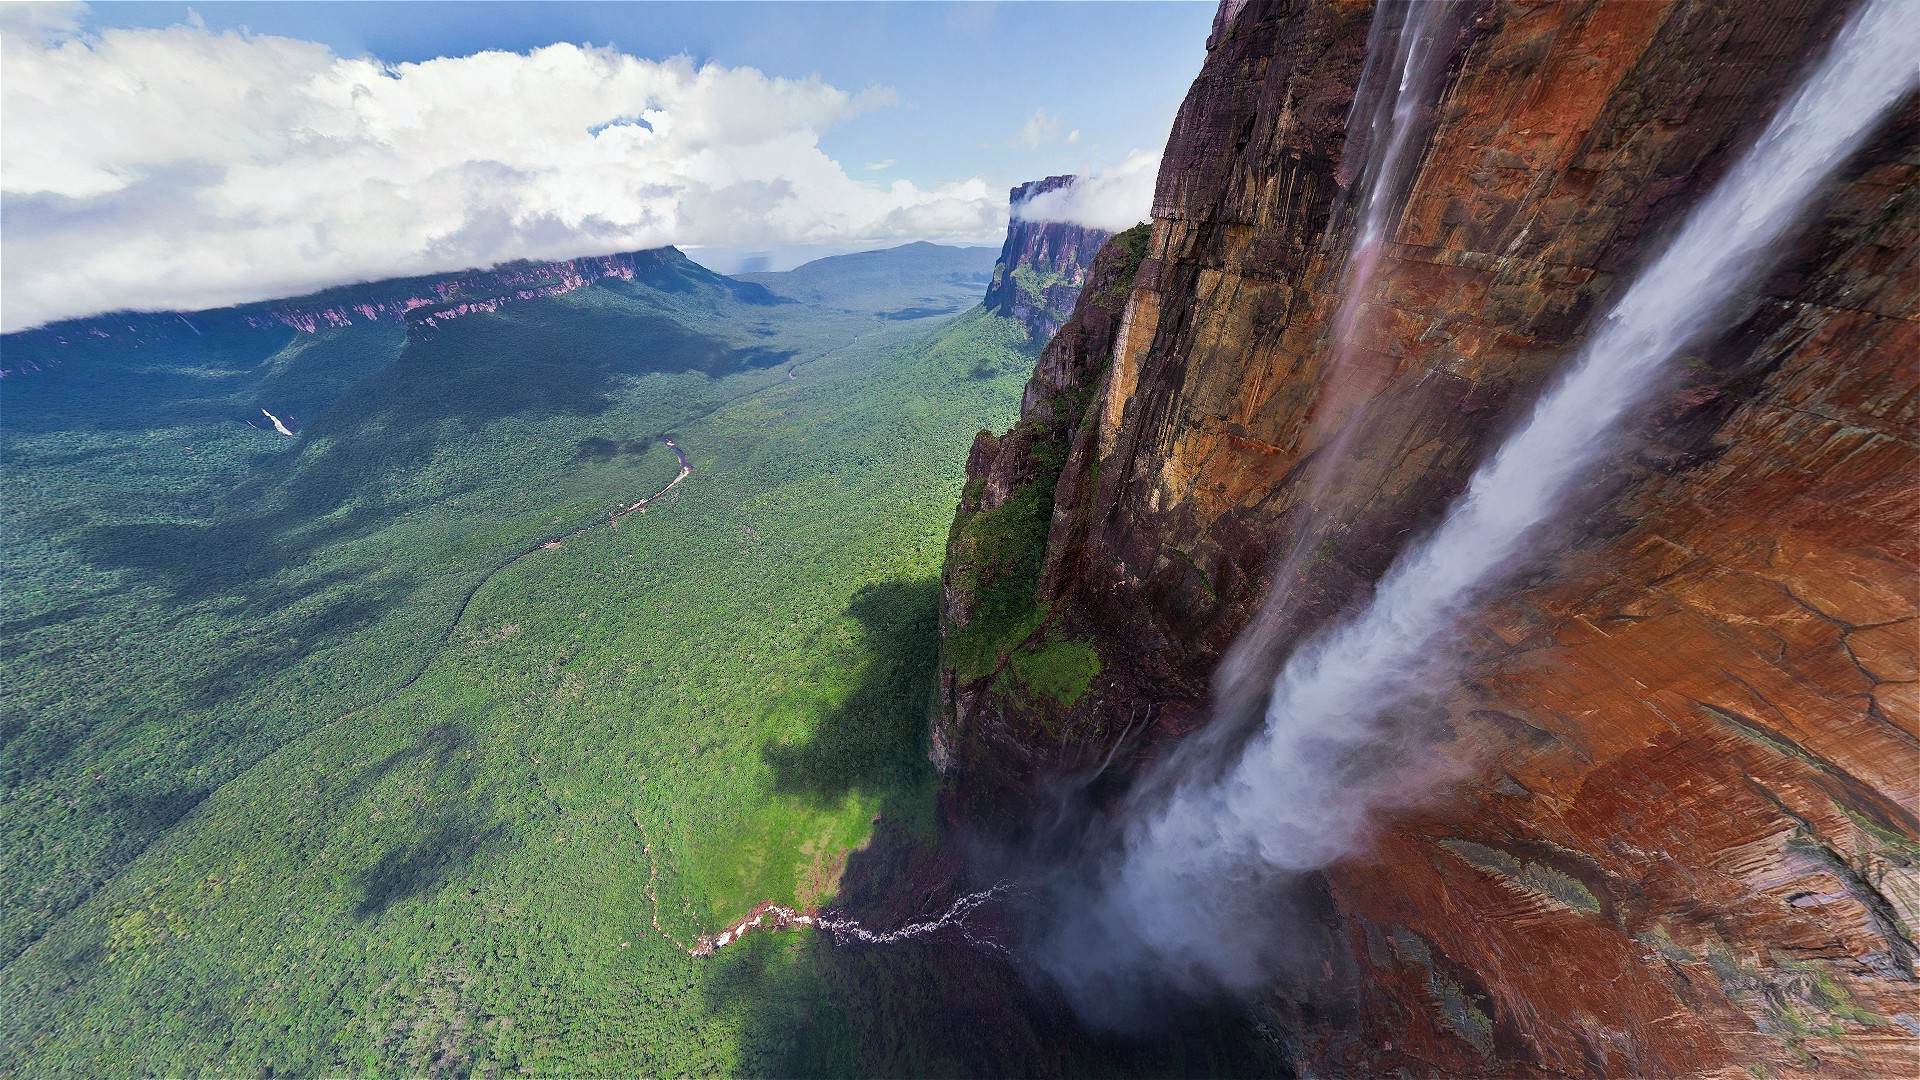 Angel Falls Hd Wallpaper Cliff Tropical Rock Clouds Trees Tepuyes Salto 193 Ngel